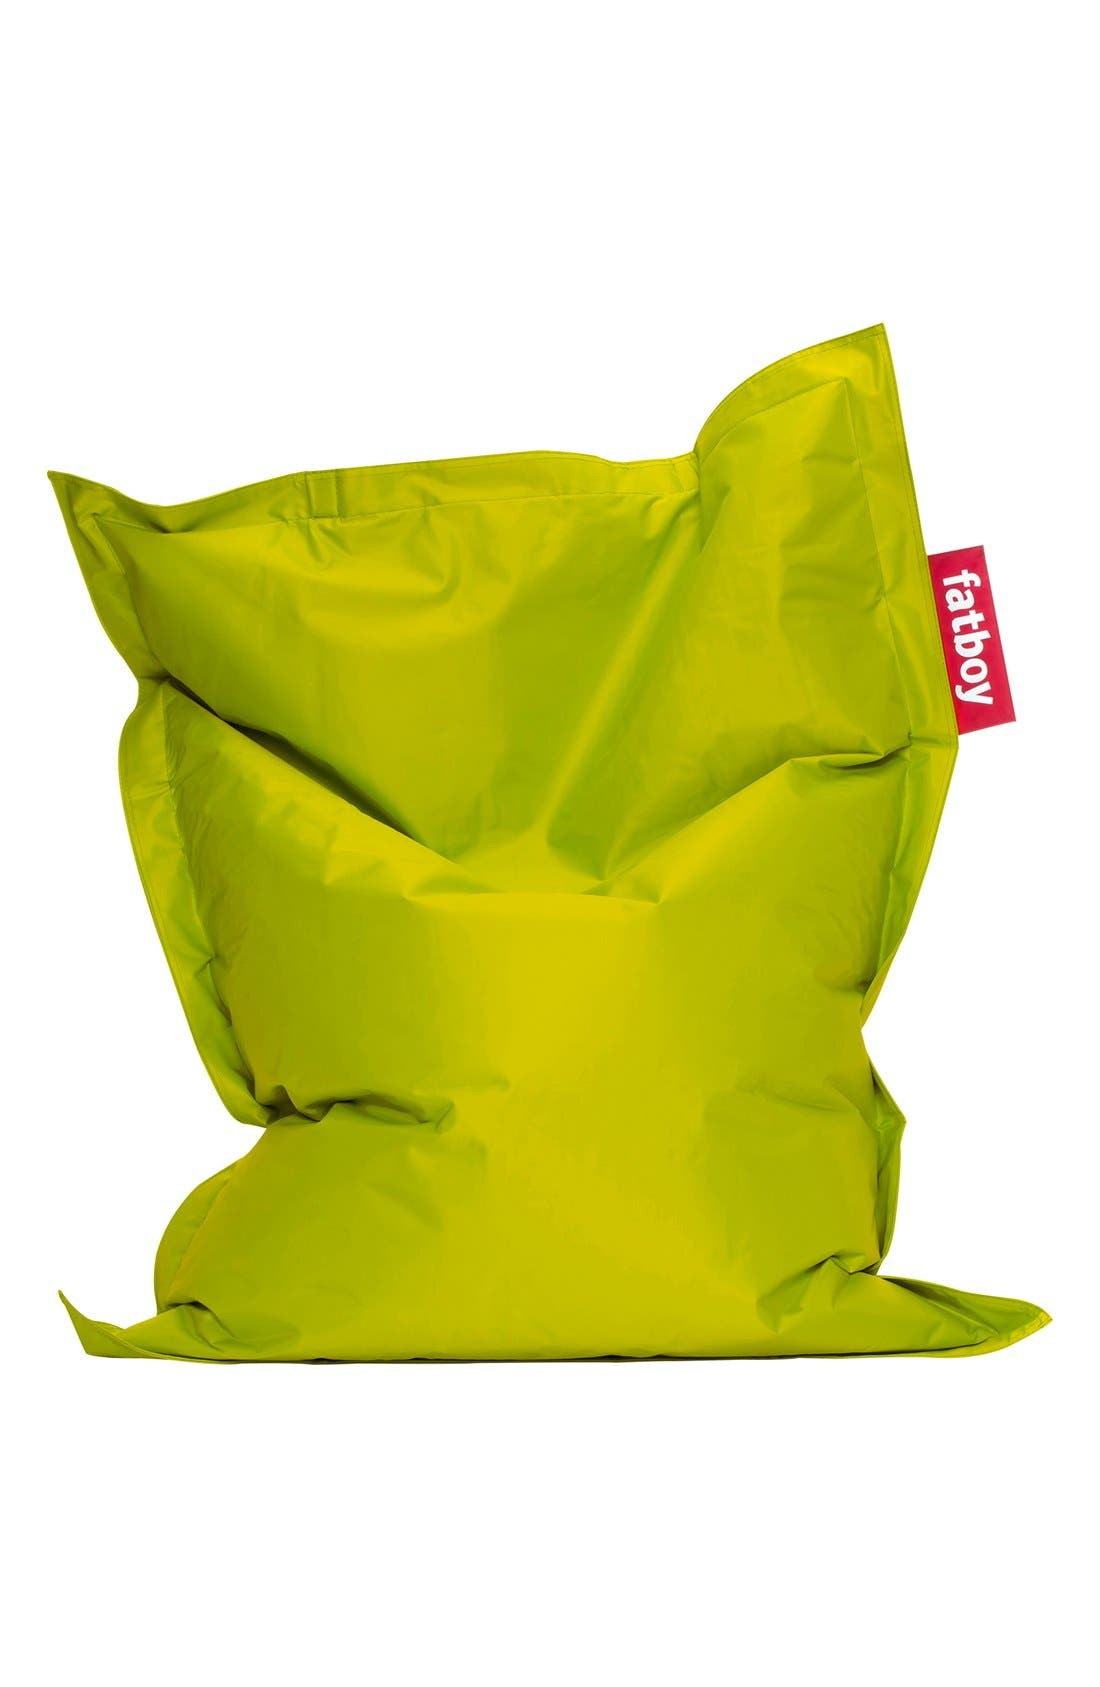 Main Image - Fatboy 'Junior' Beanbag